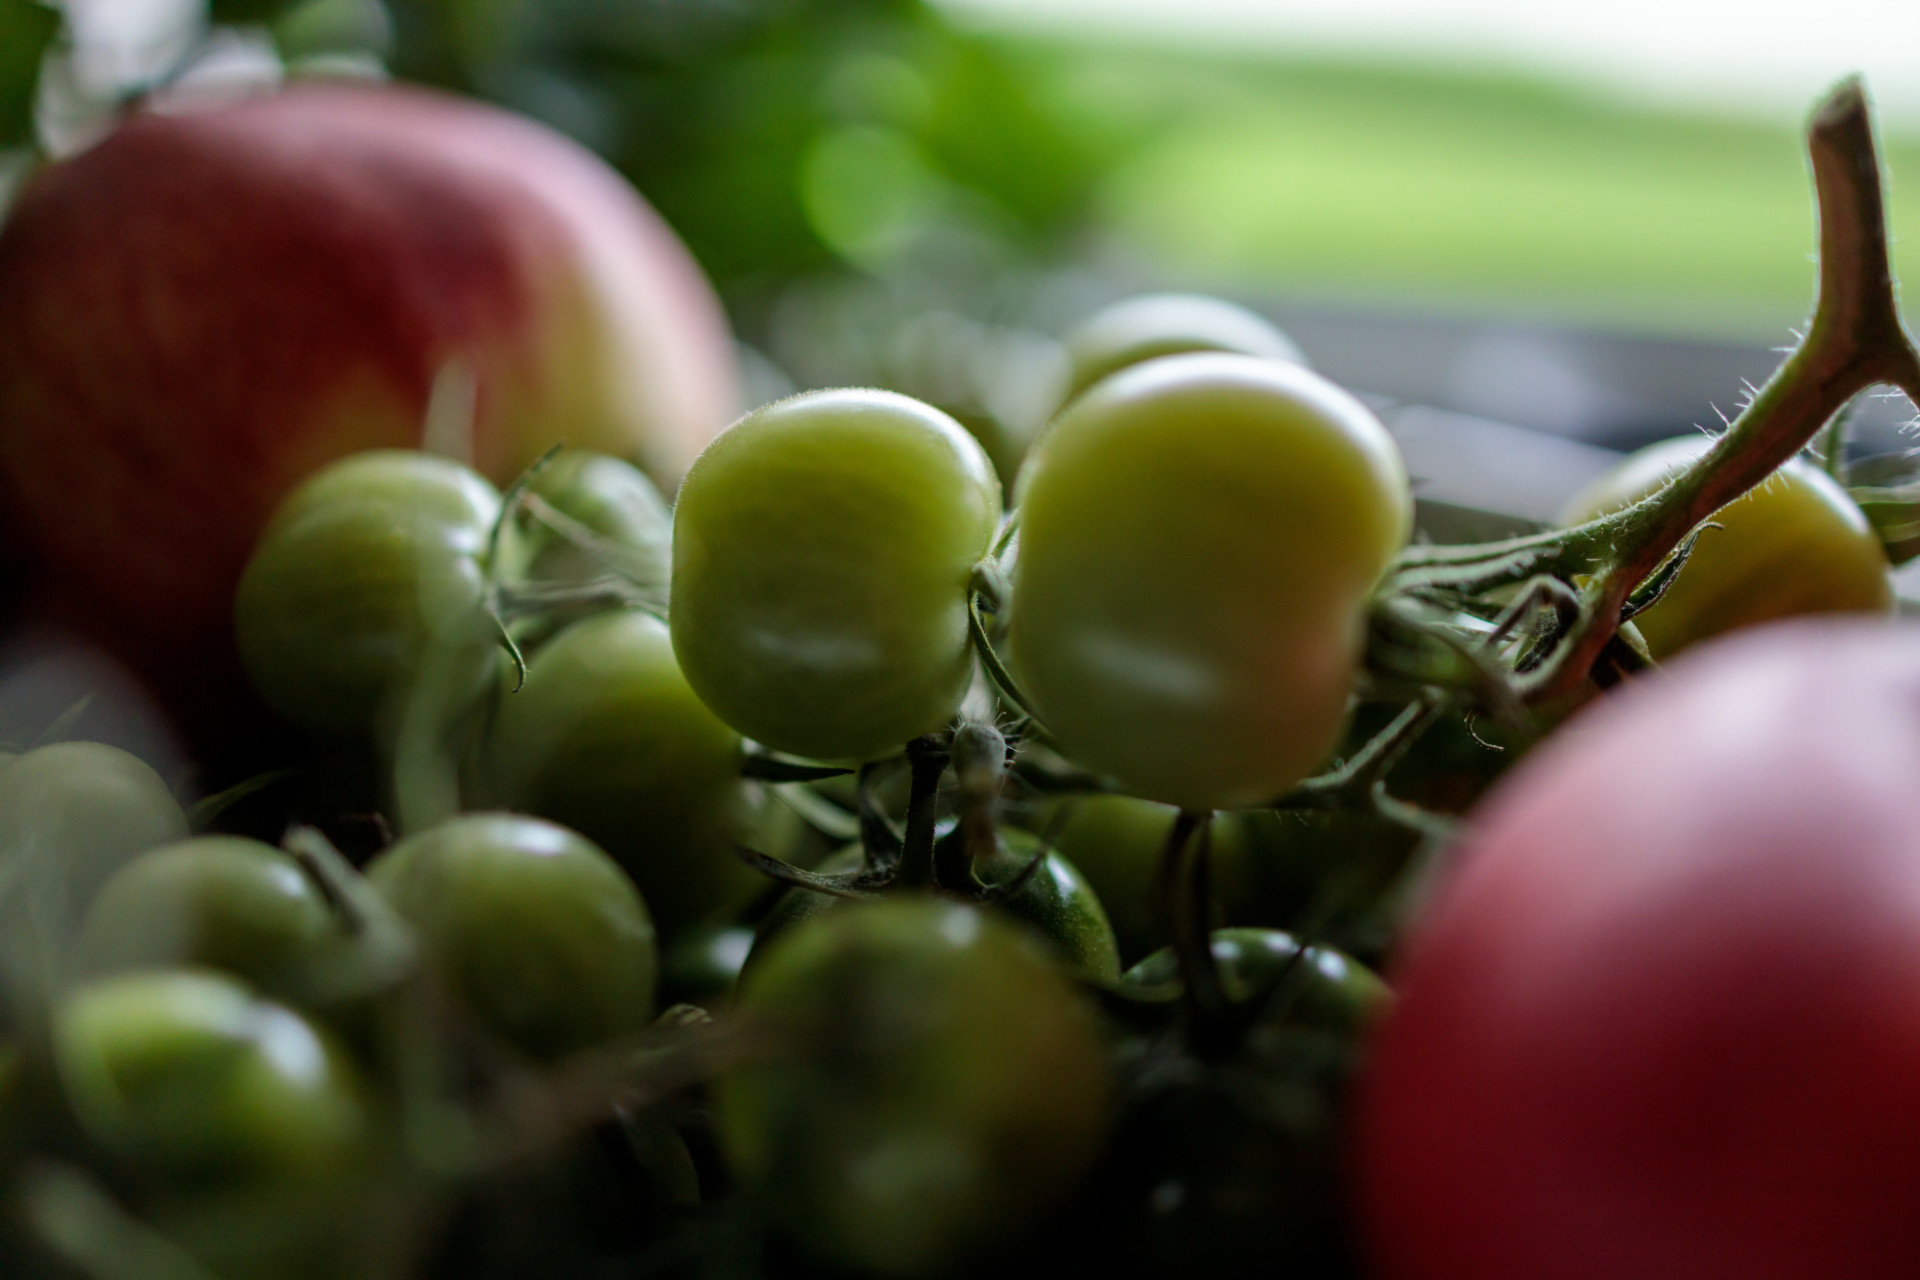 Green tomatoes are ripening on the windowsill